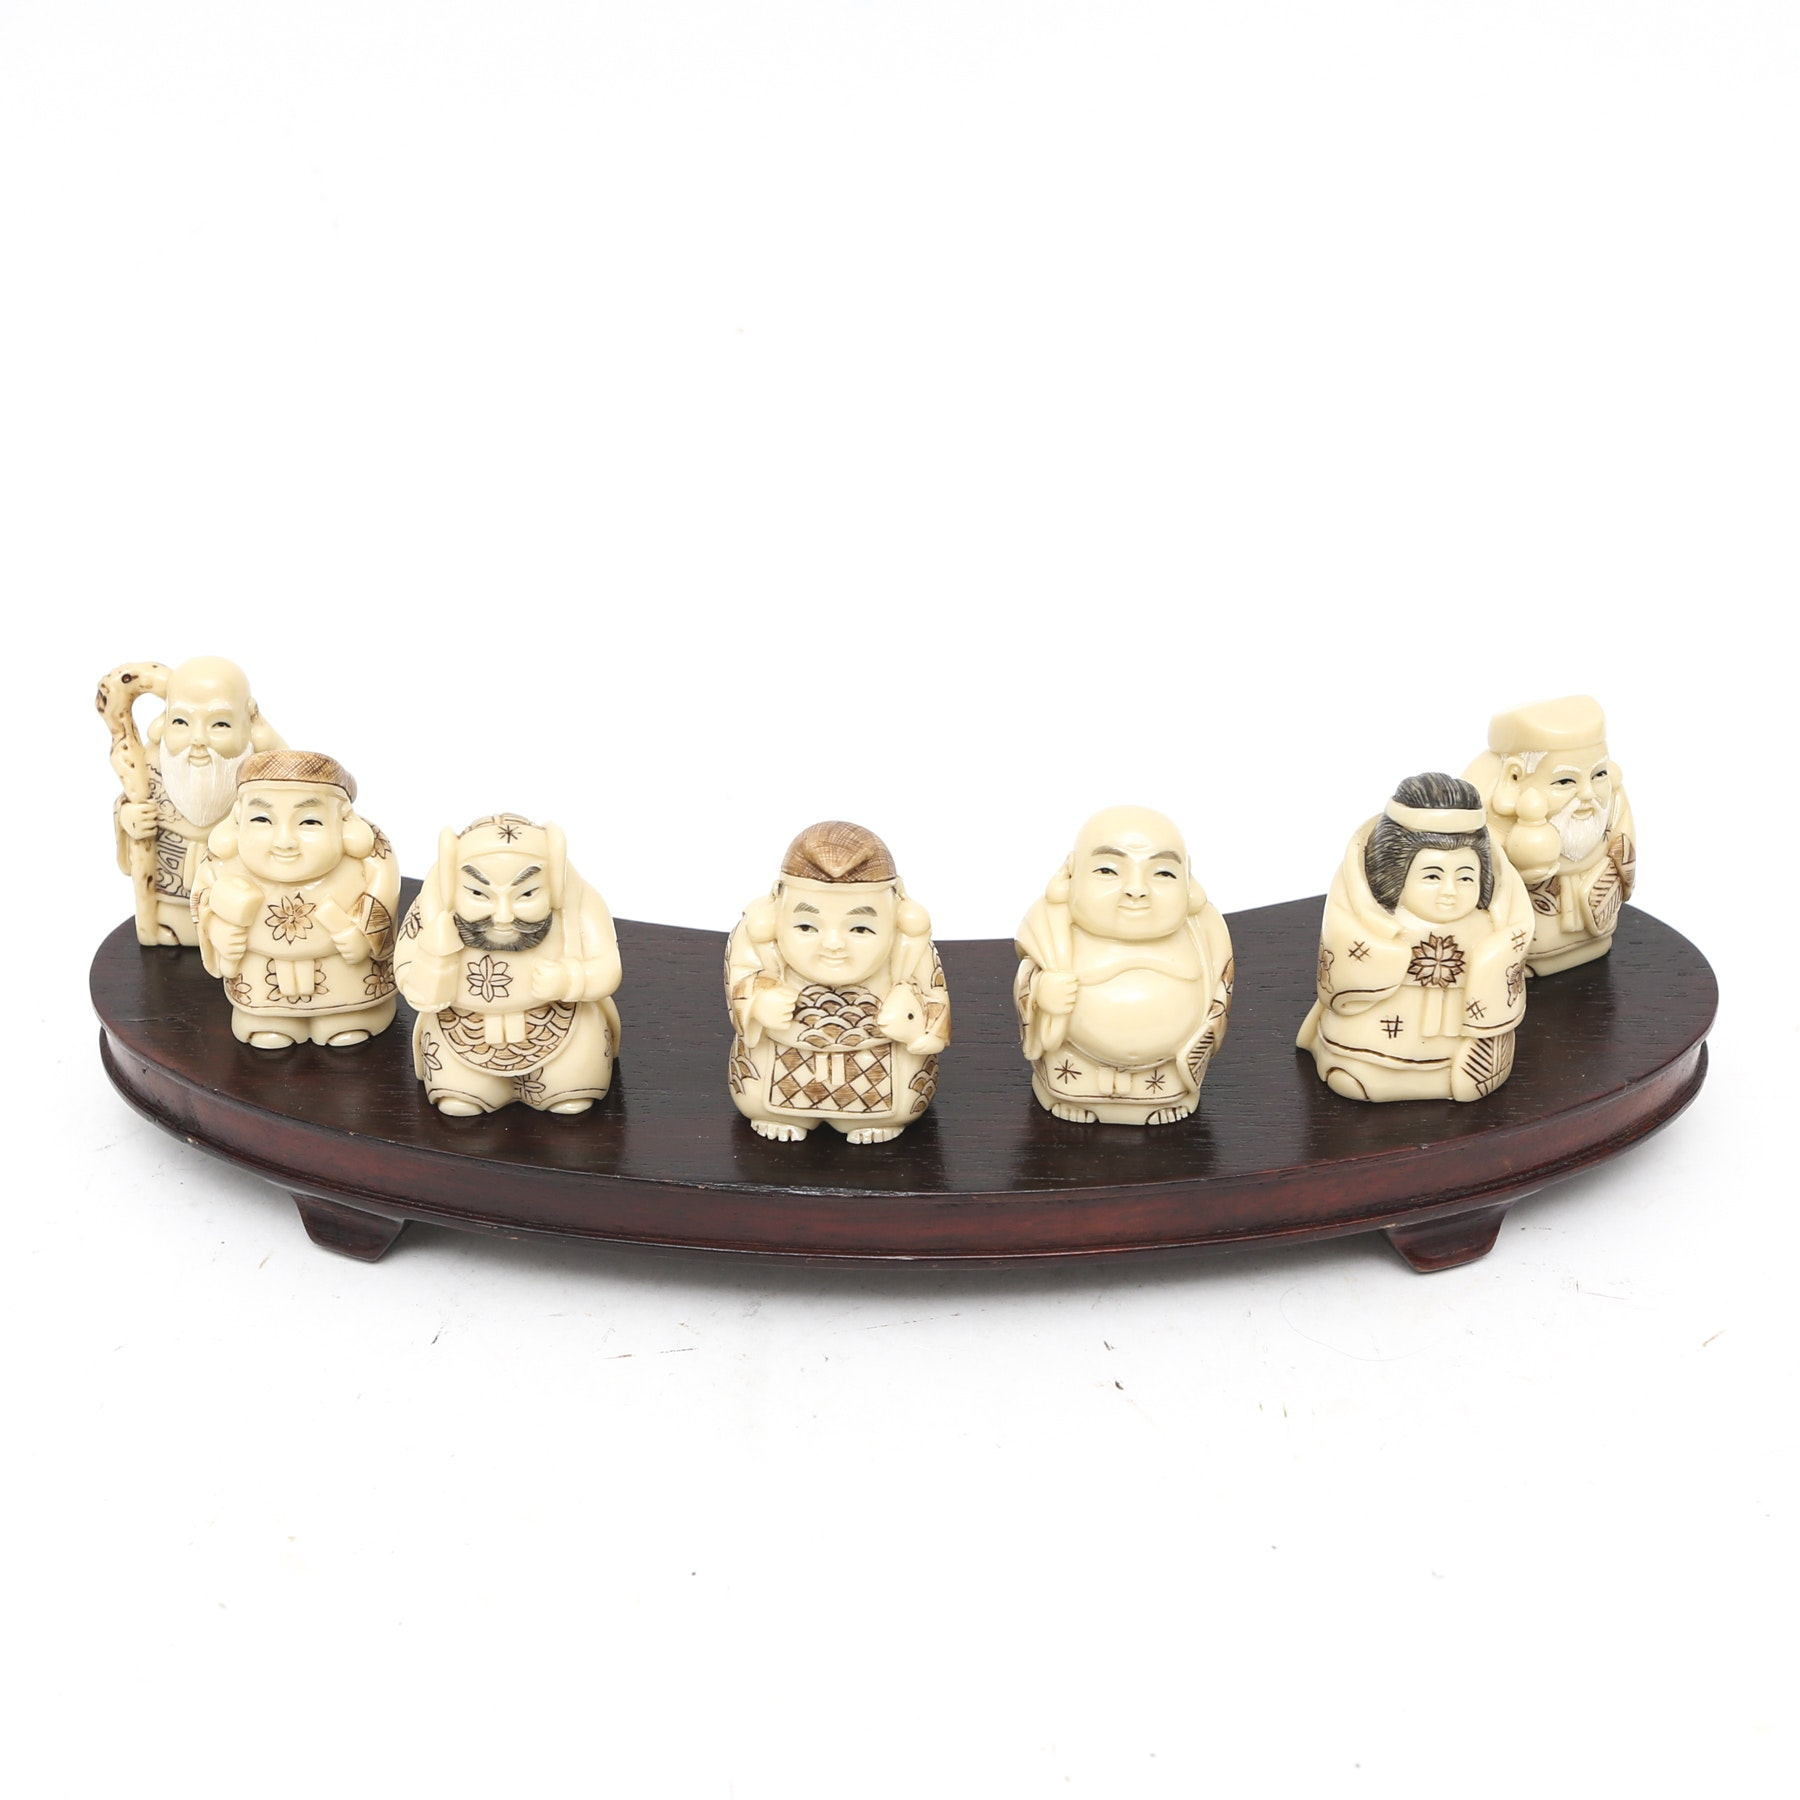 Netsuke-Style Figurines with Wooden Stand